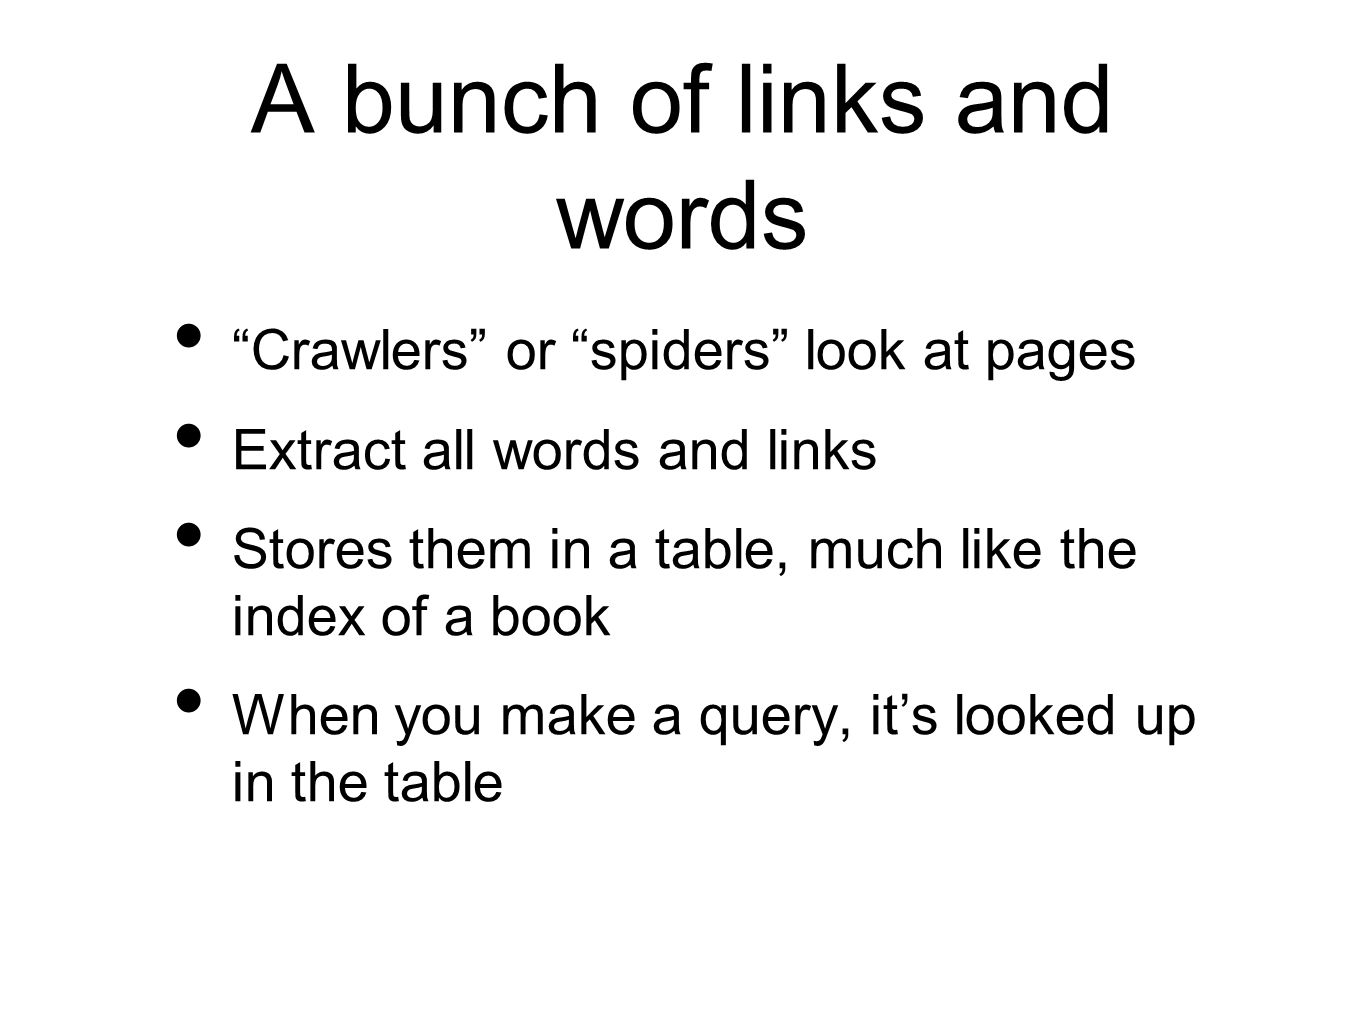 A bunch of links and words Crawlers or spiders look at pages Extract all words and links Stores them in a table, much like the index of a book When you make a query, its looked up in the table